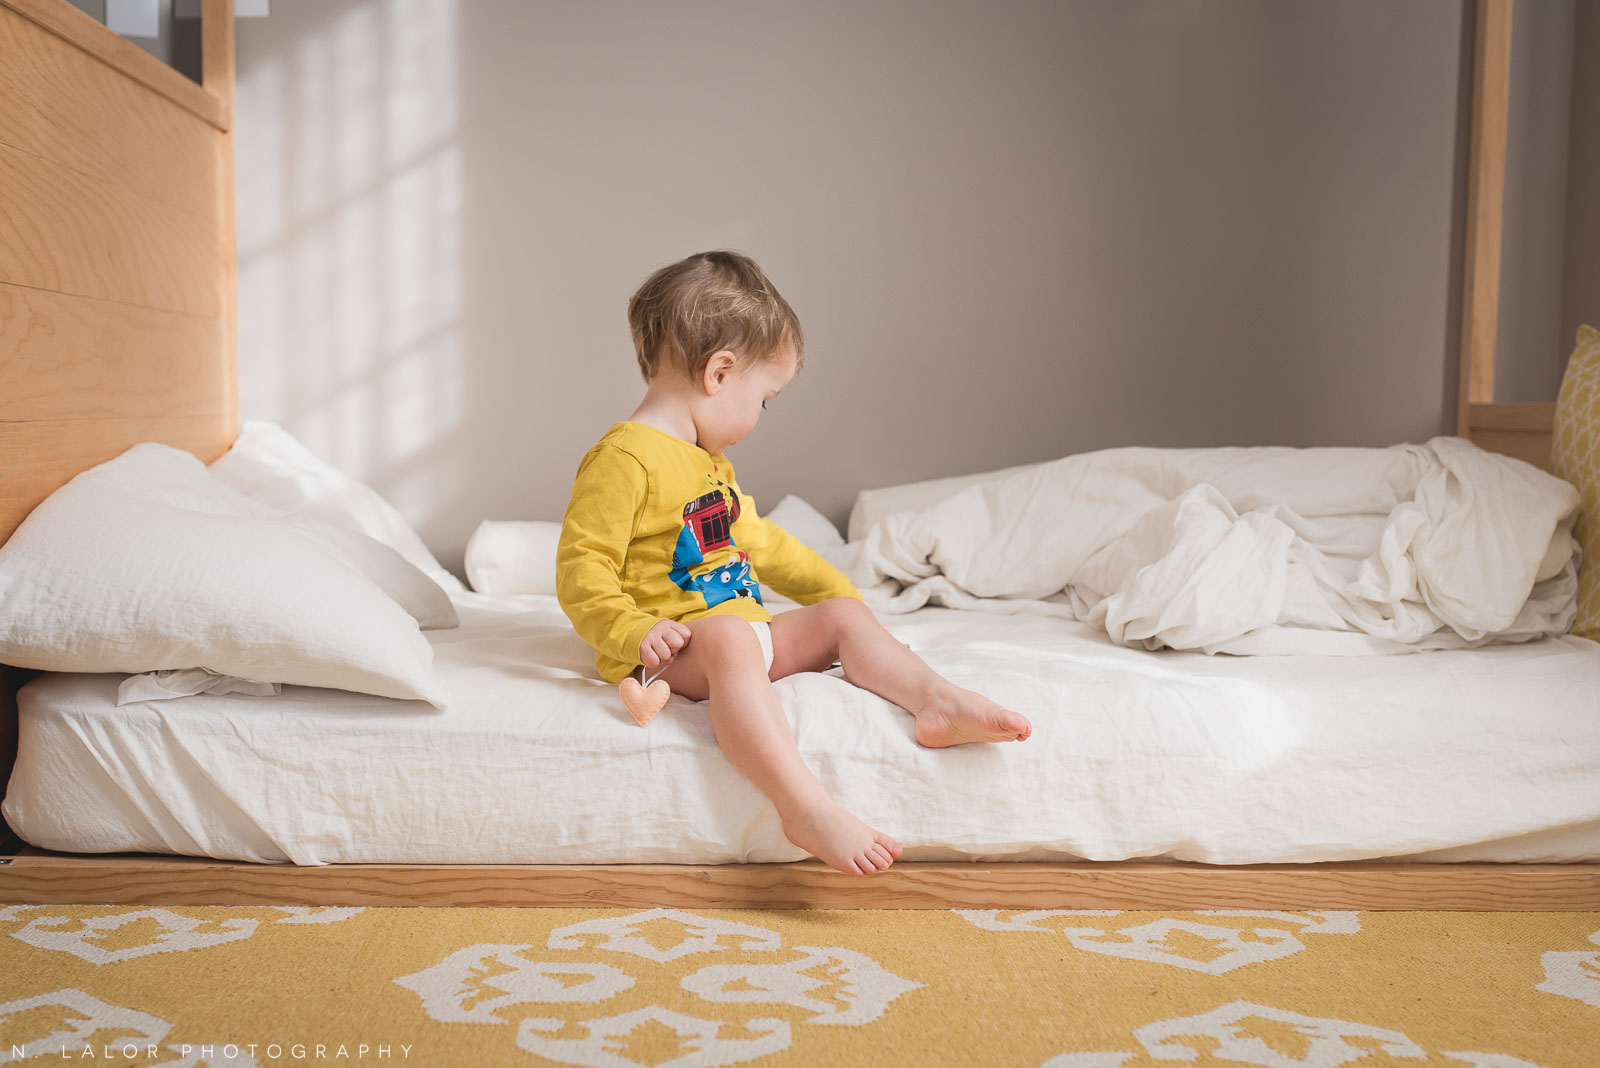 Two year old toddler sitting on his bed and holding a little felt heart ornament. Photo by N. Lalor Photography.